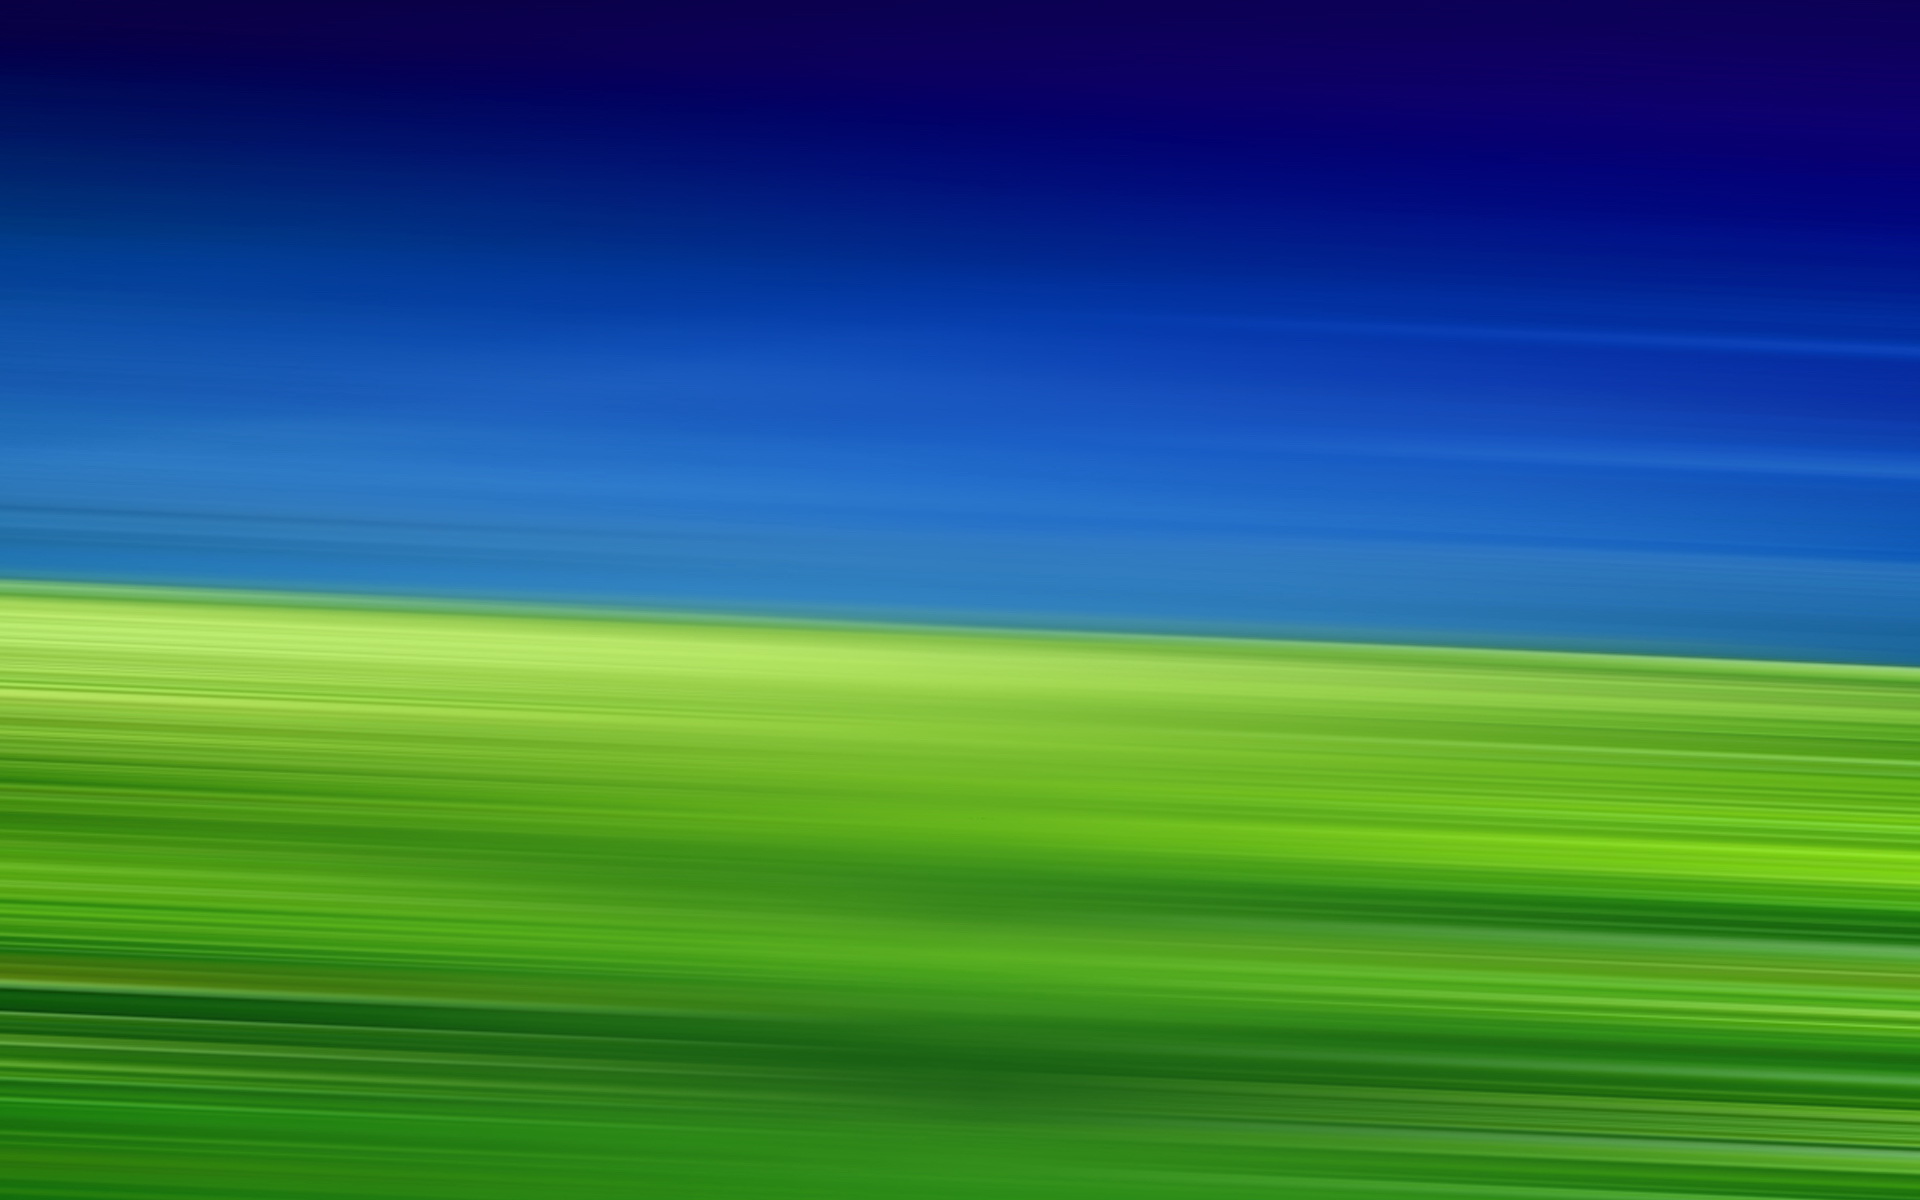 Blue Green Wallpaper HD